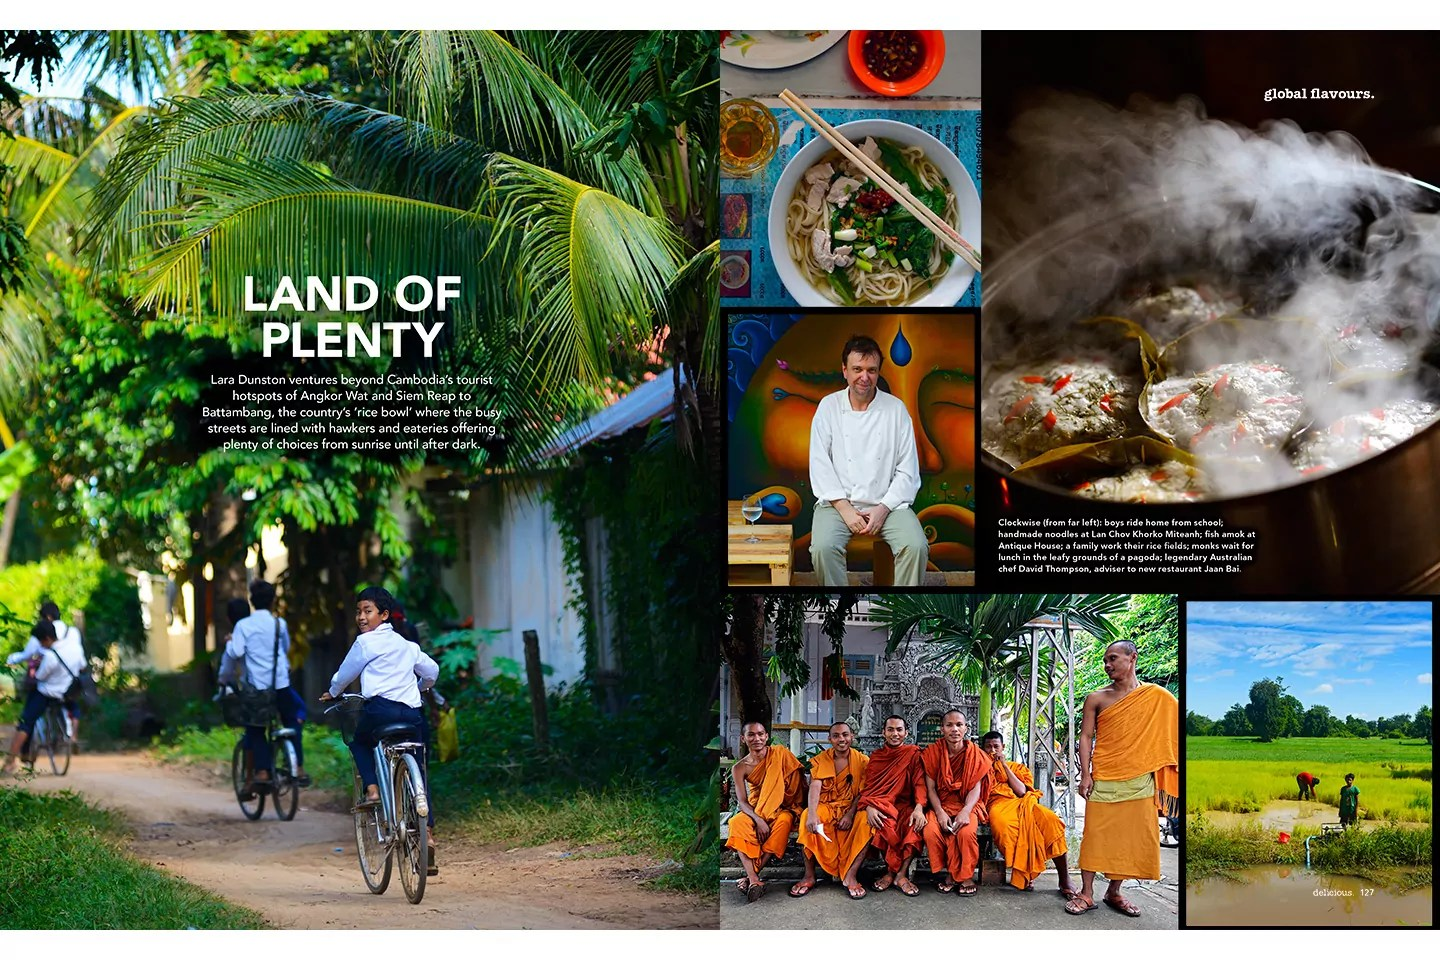 BBC Delicious Magazine (Australia). Global Plates feature on Battambang, Cambodia. Lara Dunston.